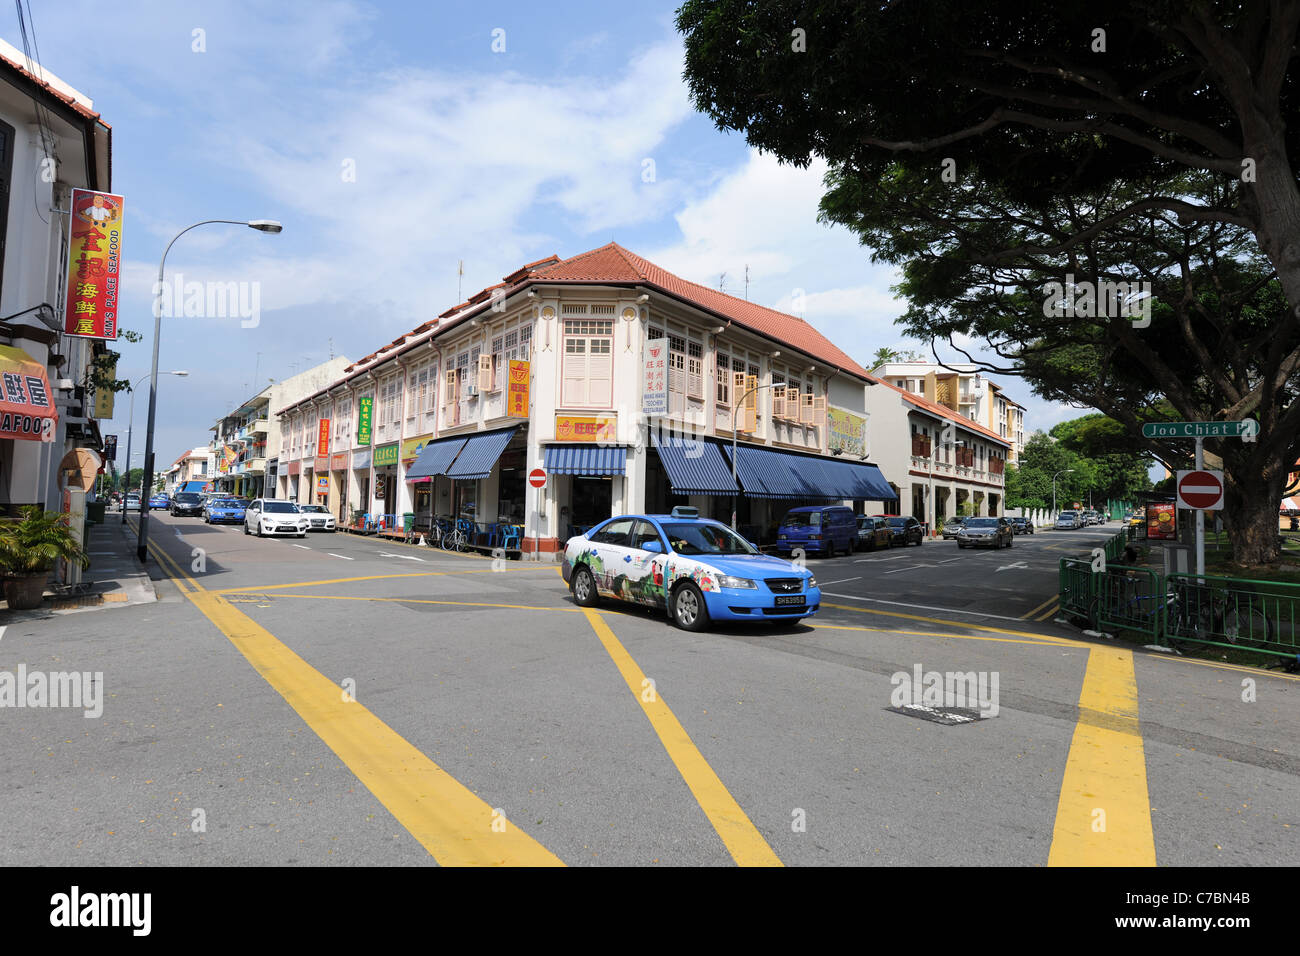 taxi, road junction and shophouses in the residential  conservation area Joo Chiat, Singapore - Stock Image